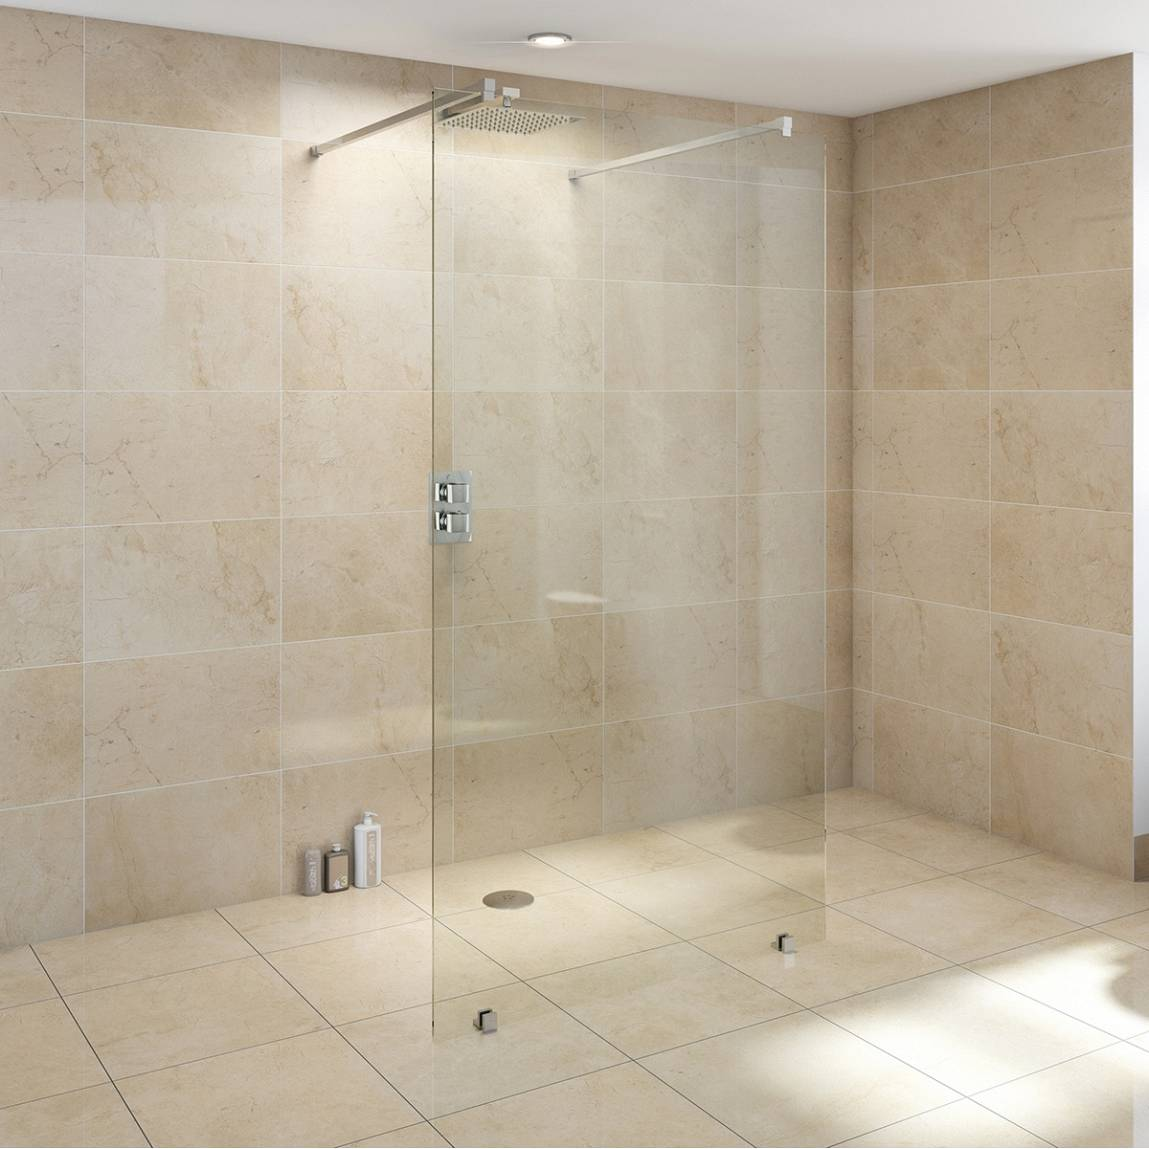 Wet room glass screen